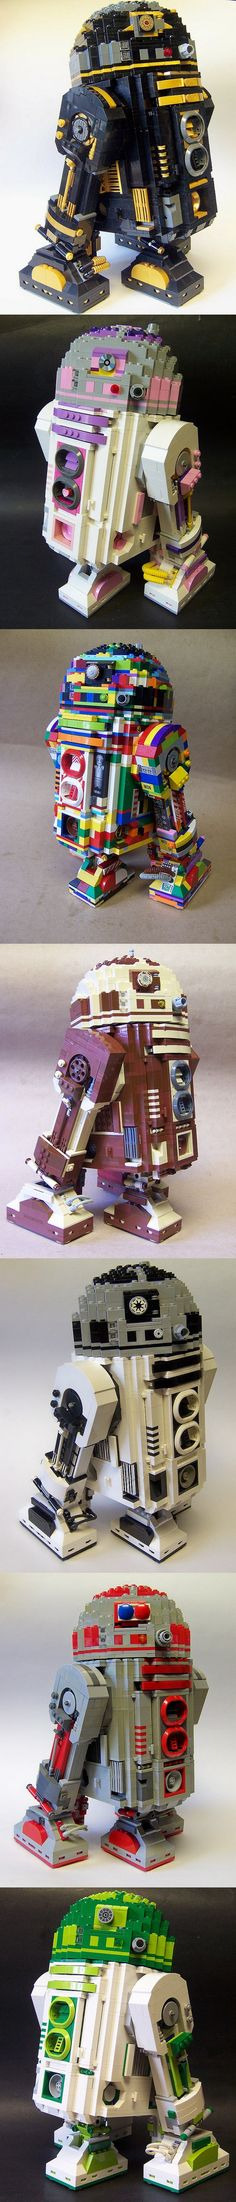 R2-D2  Pi by monsterbrick, via Flickr